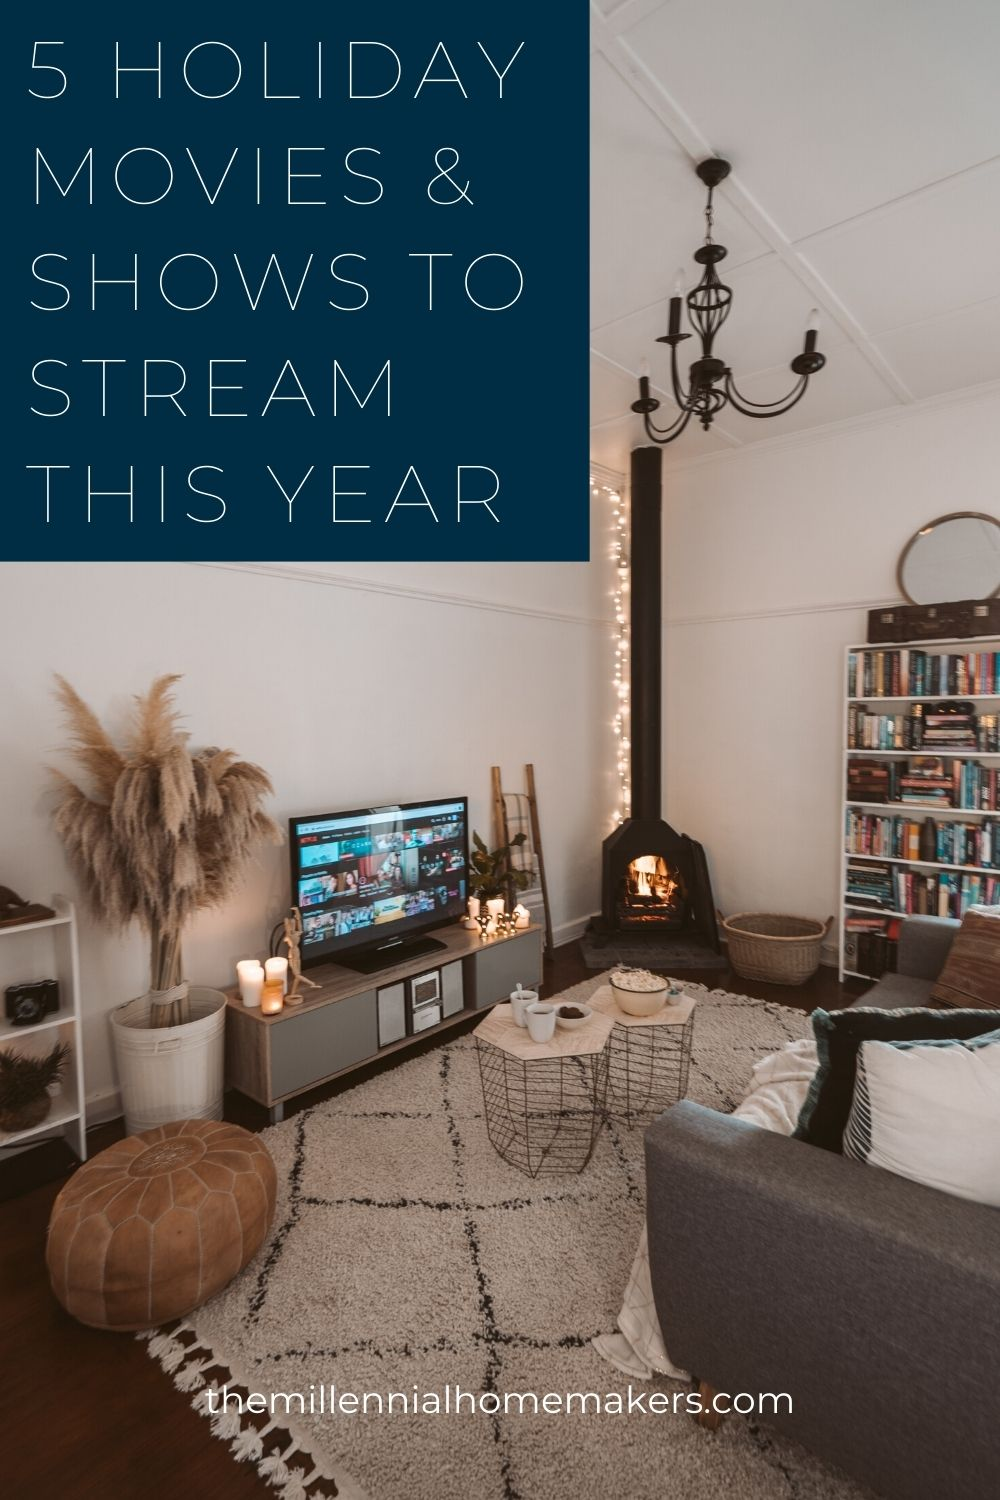 cozy and bright living room with streaming service on the TV